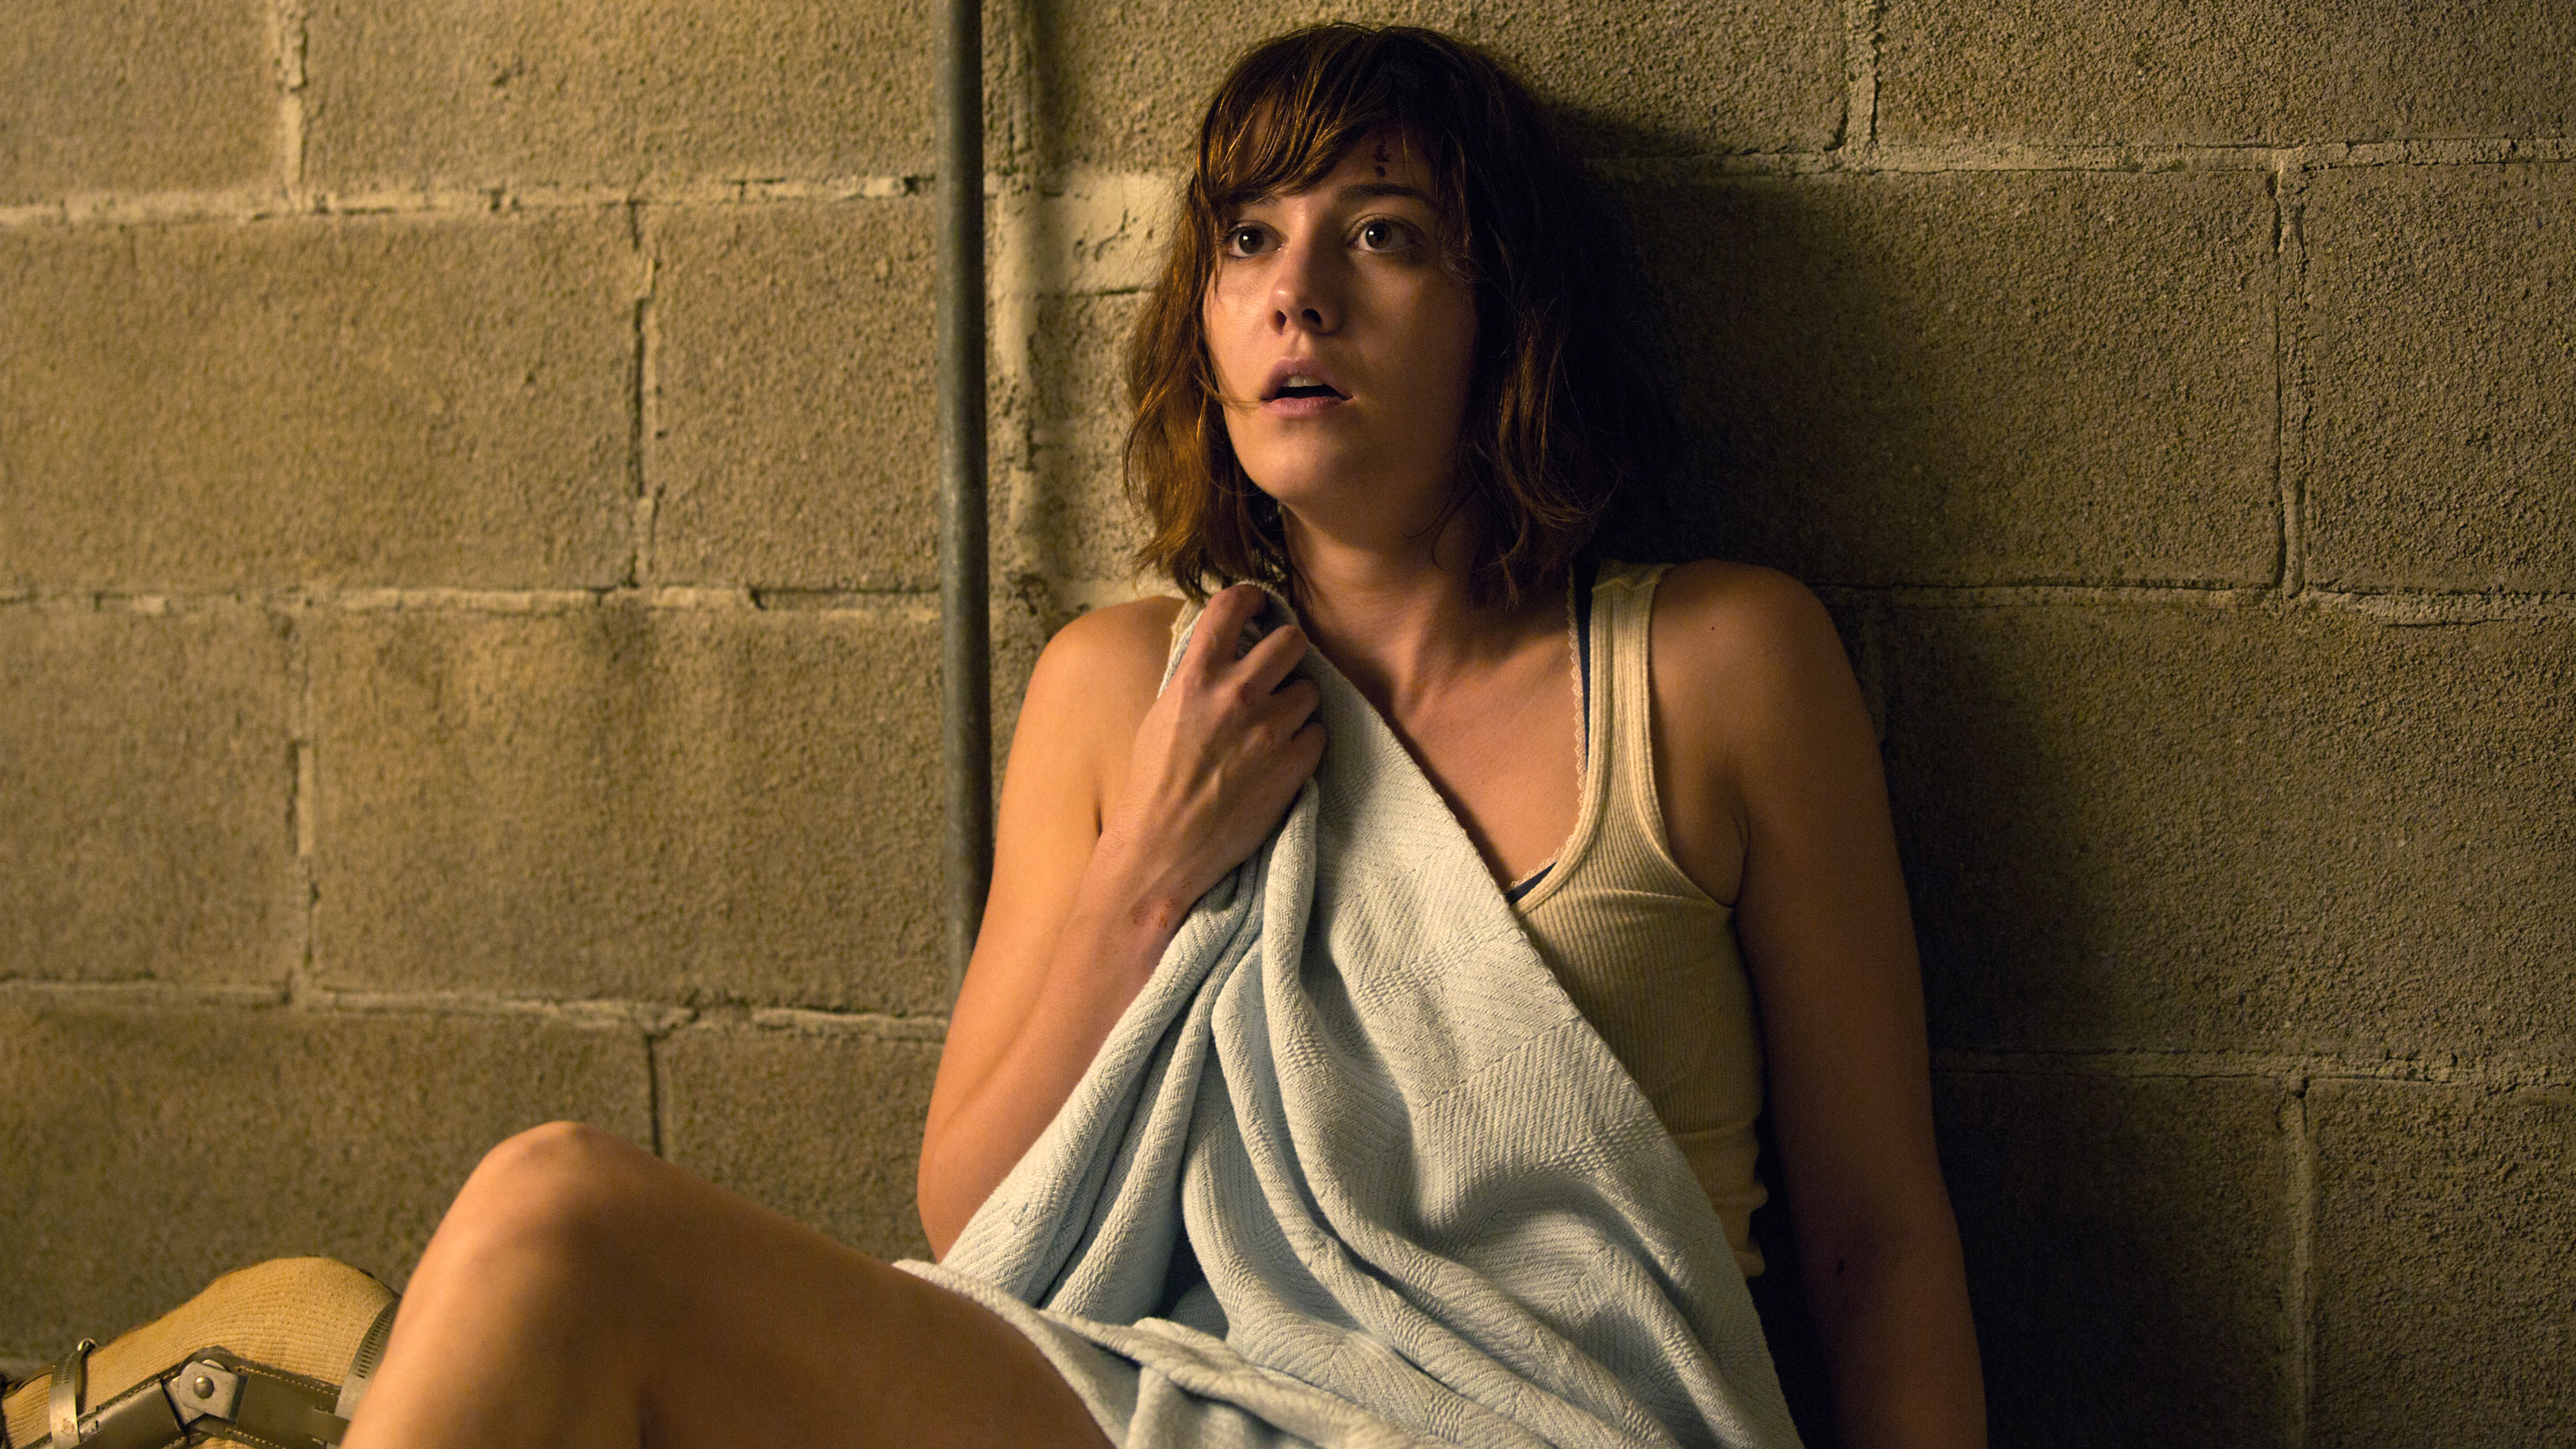 Mary Elizabeth Winstead Cloverfield Lane wallpaper